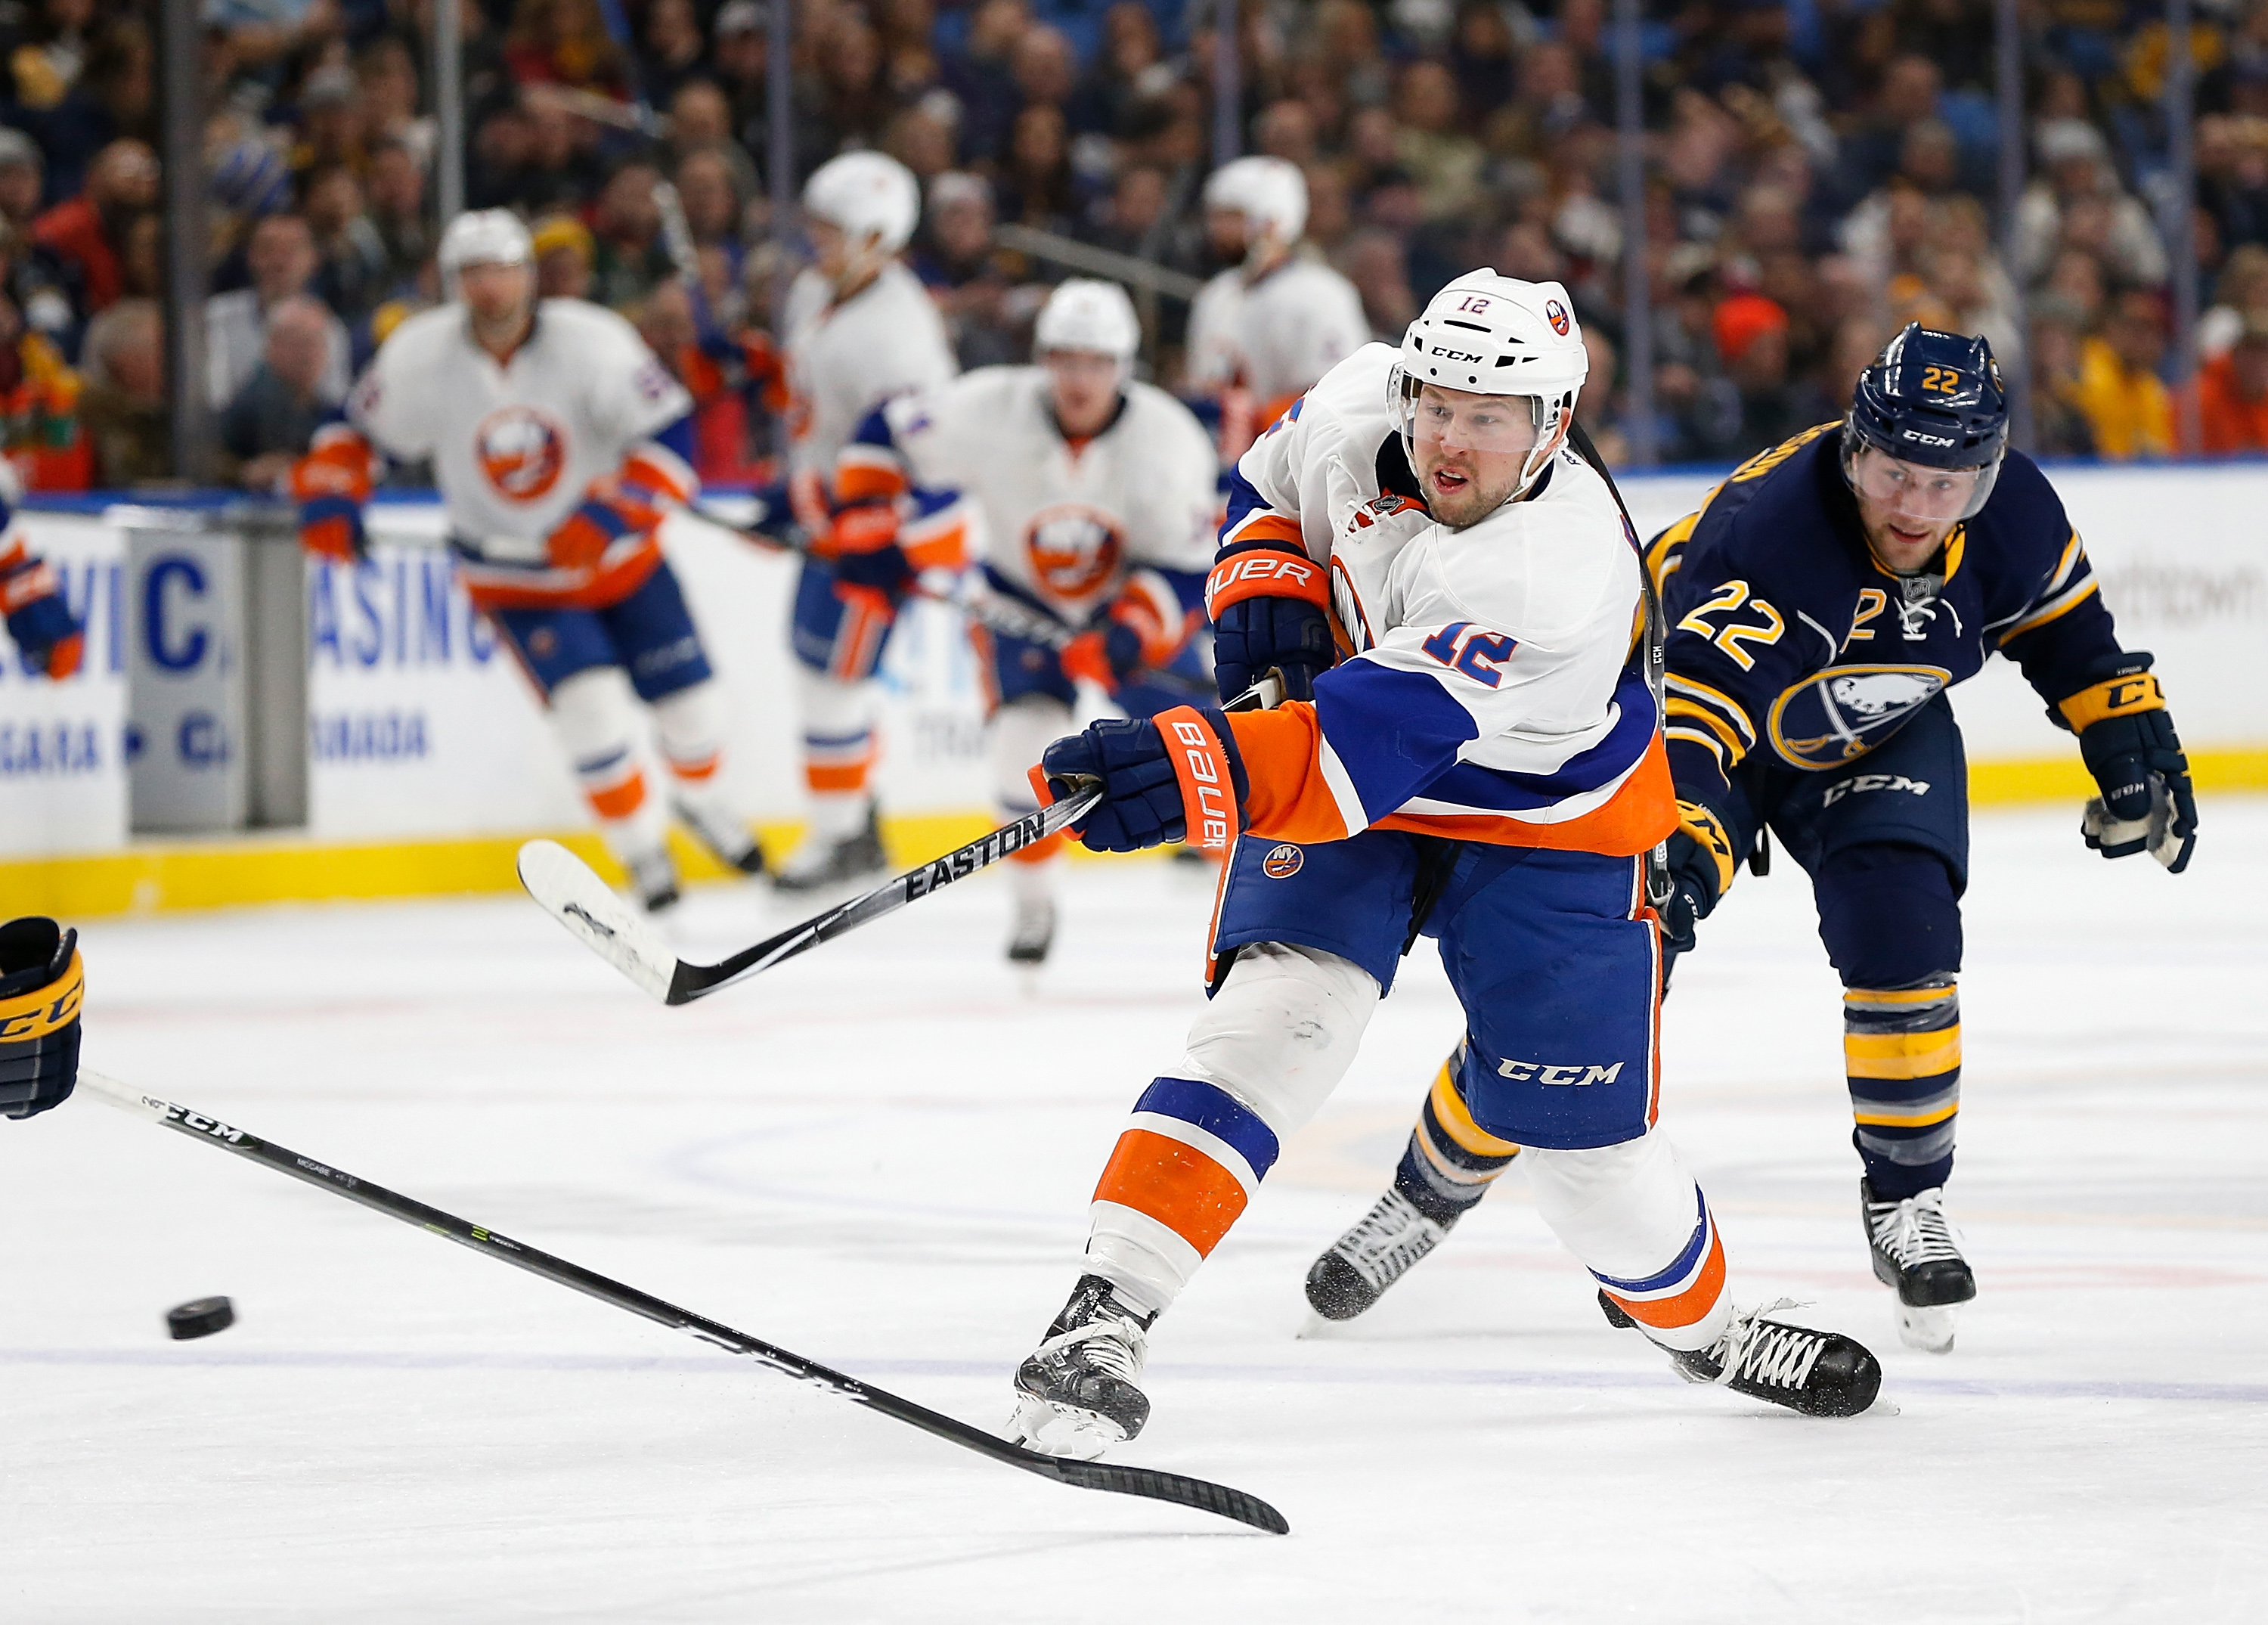 Islanders trade D Hamonic to Flames for 3 draft picks